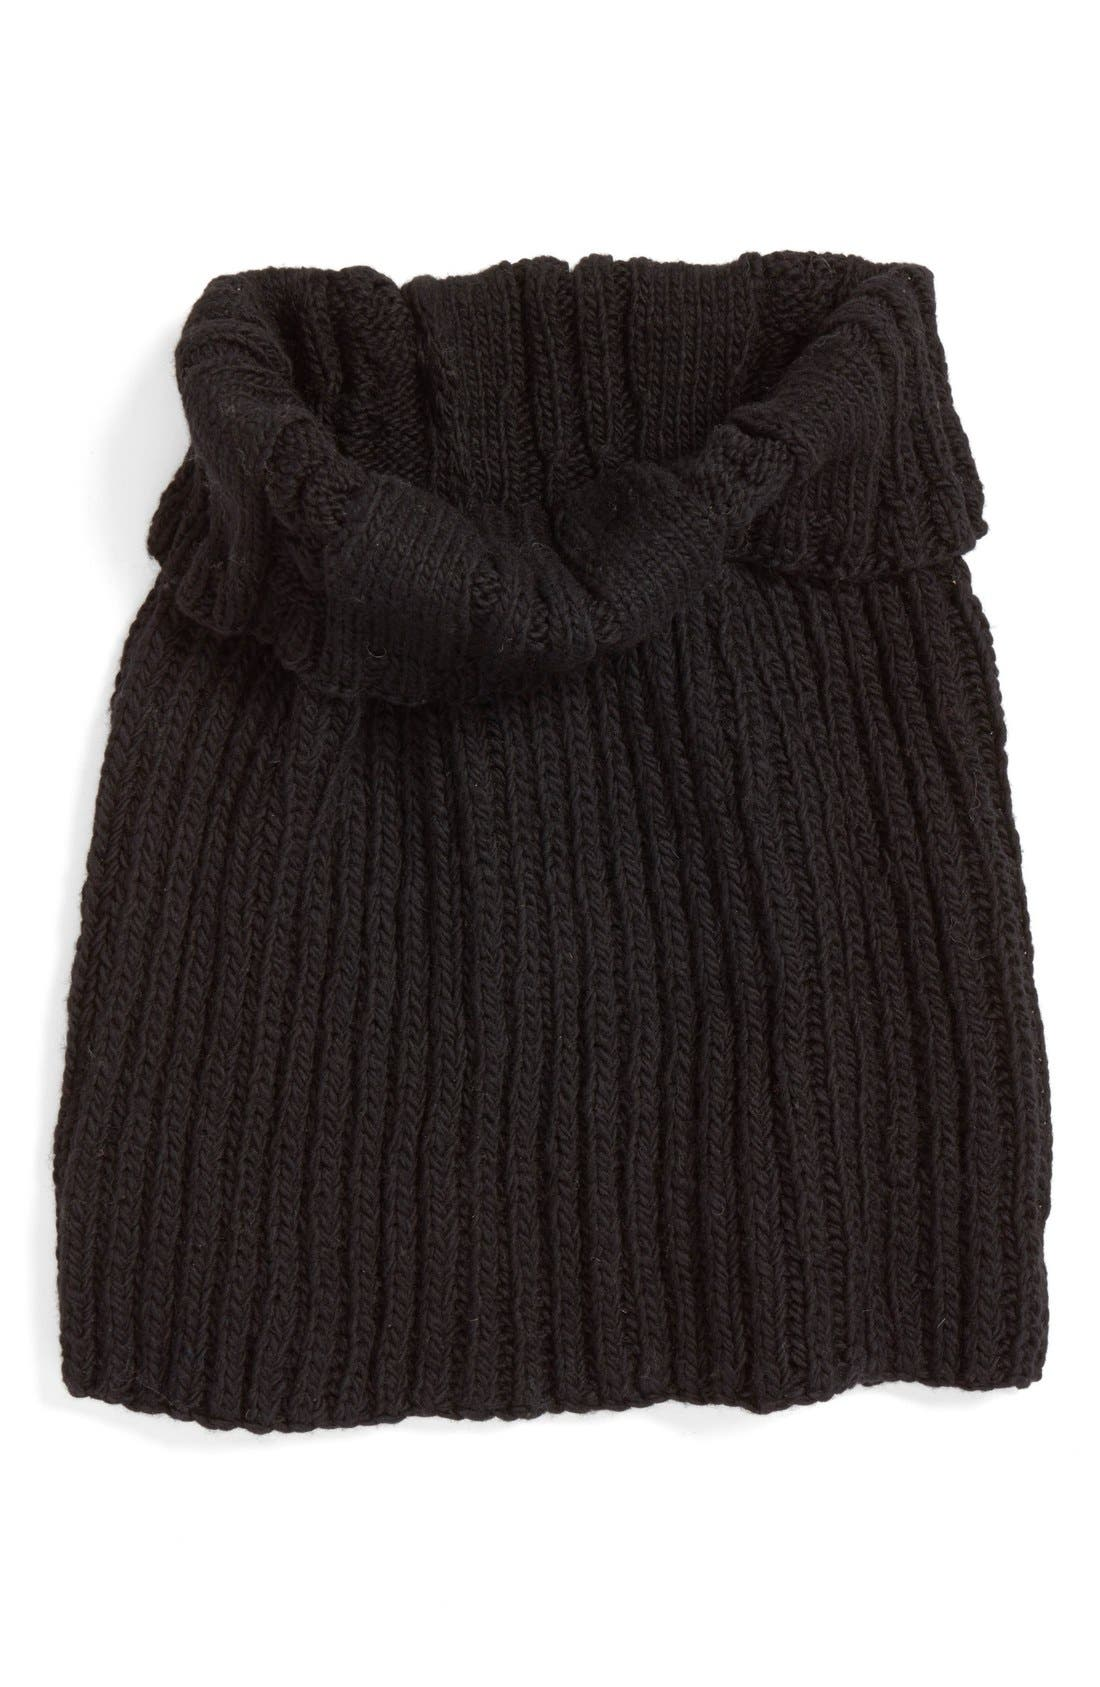 Oversize Cable Knit Wool Infinity Scarf,                             Main thumbnail 2, color,